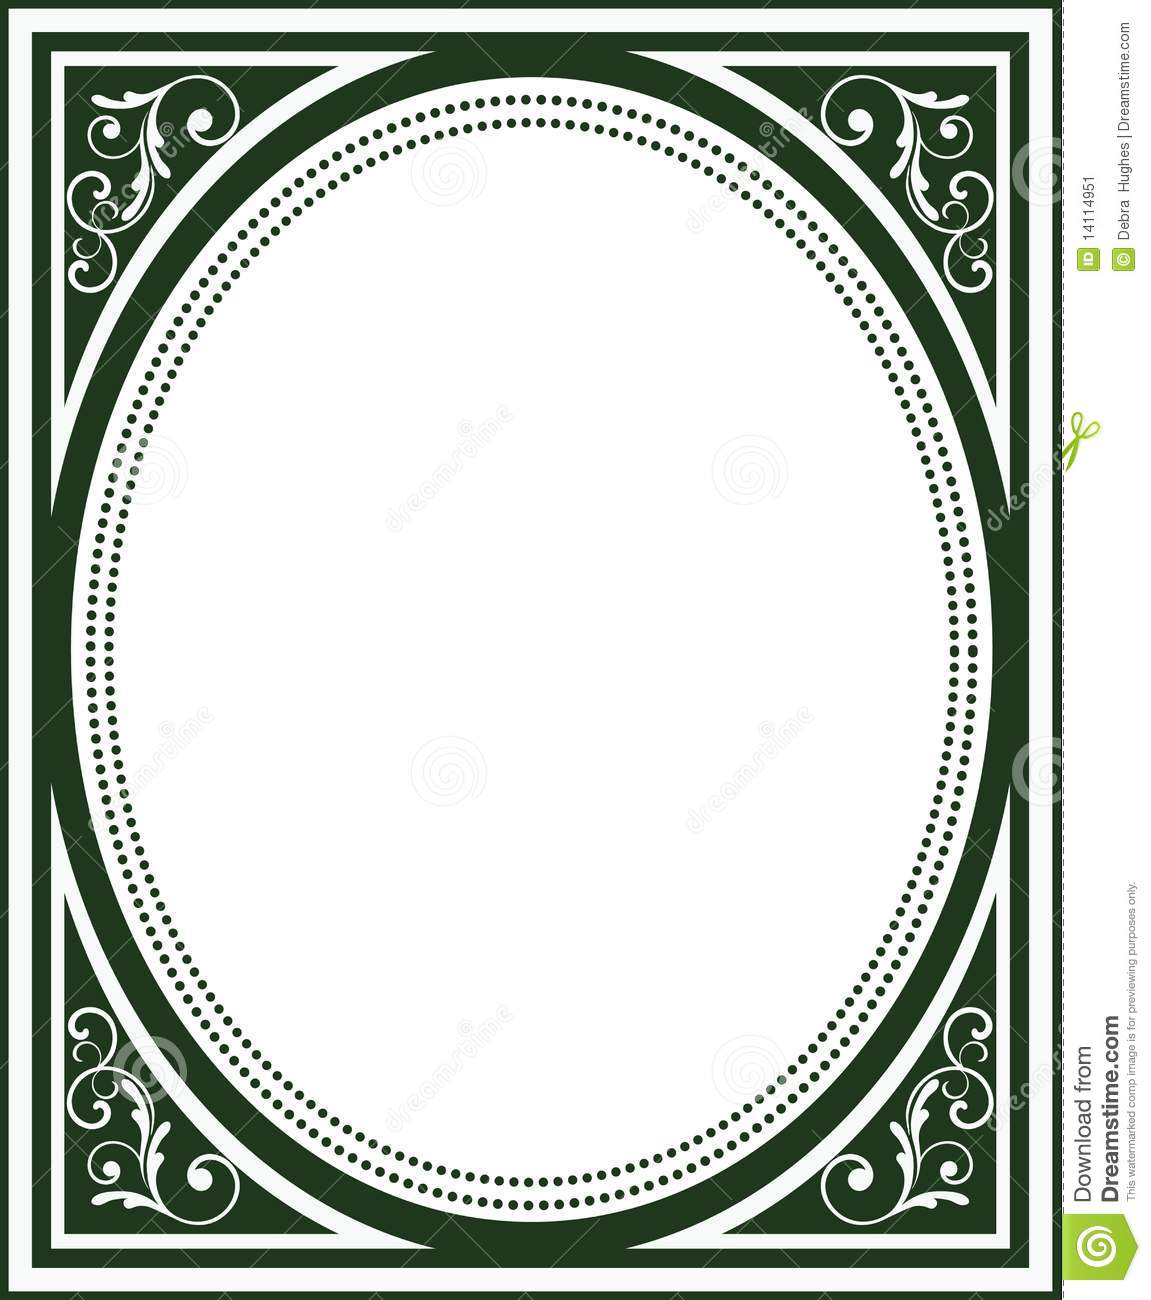 Glasses Frame Covers : Old Fashioned Book Cover Frame Stock Image - Image: 14114951